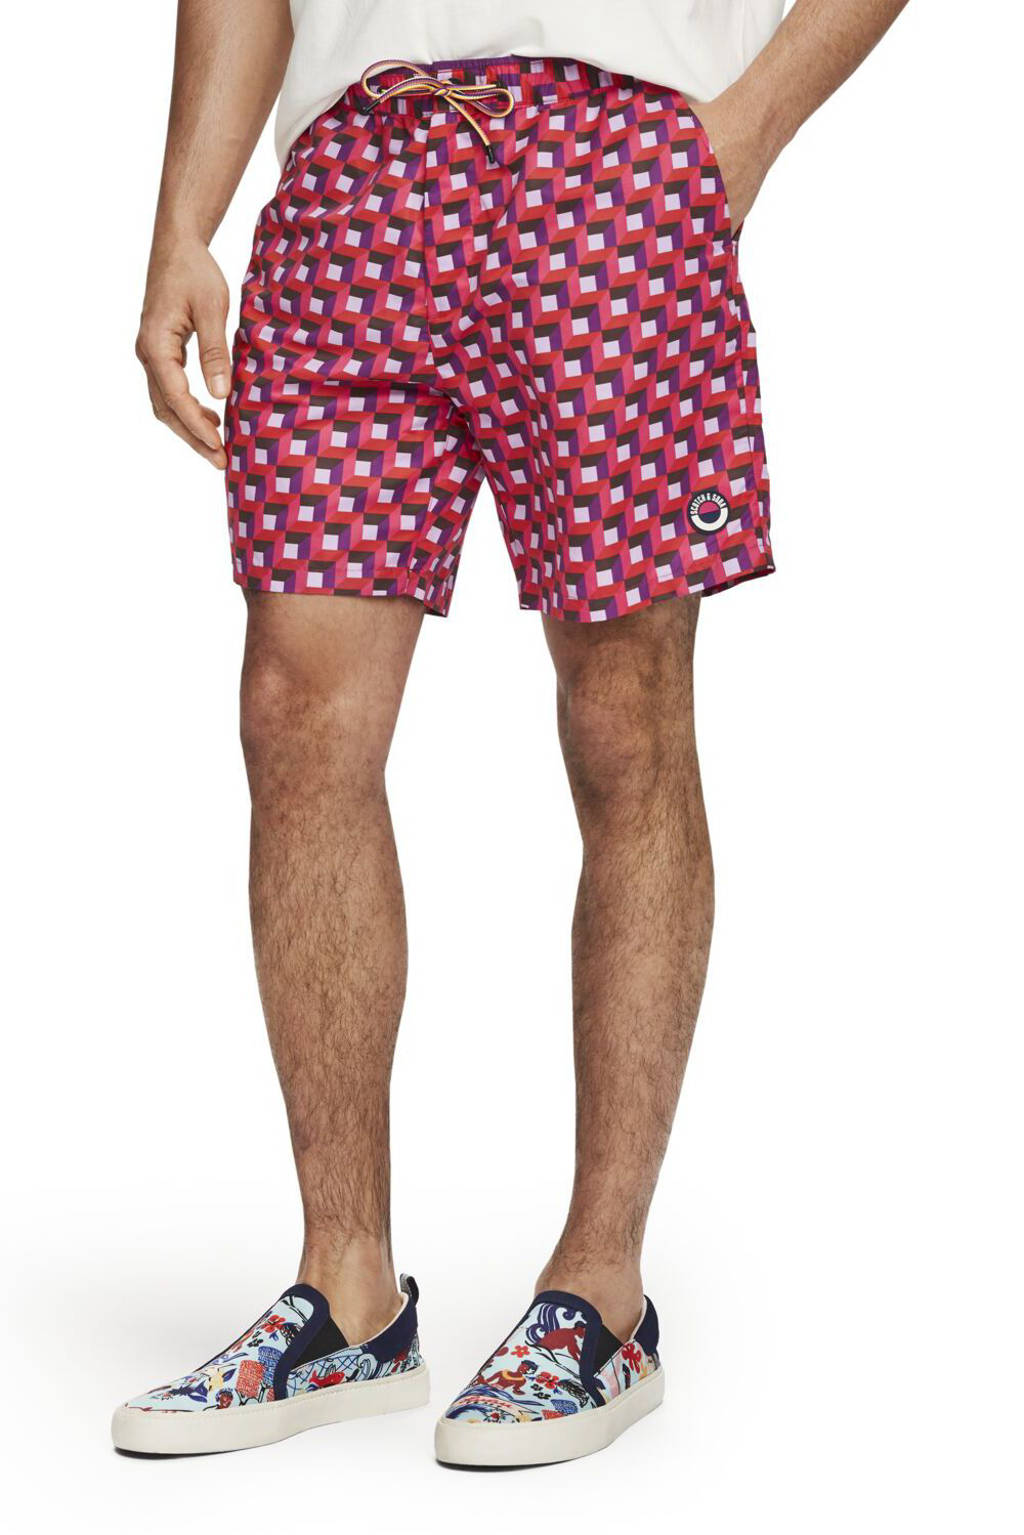 Scotch & Soda zwemshort met all over print rood/paars/wit